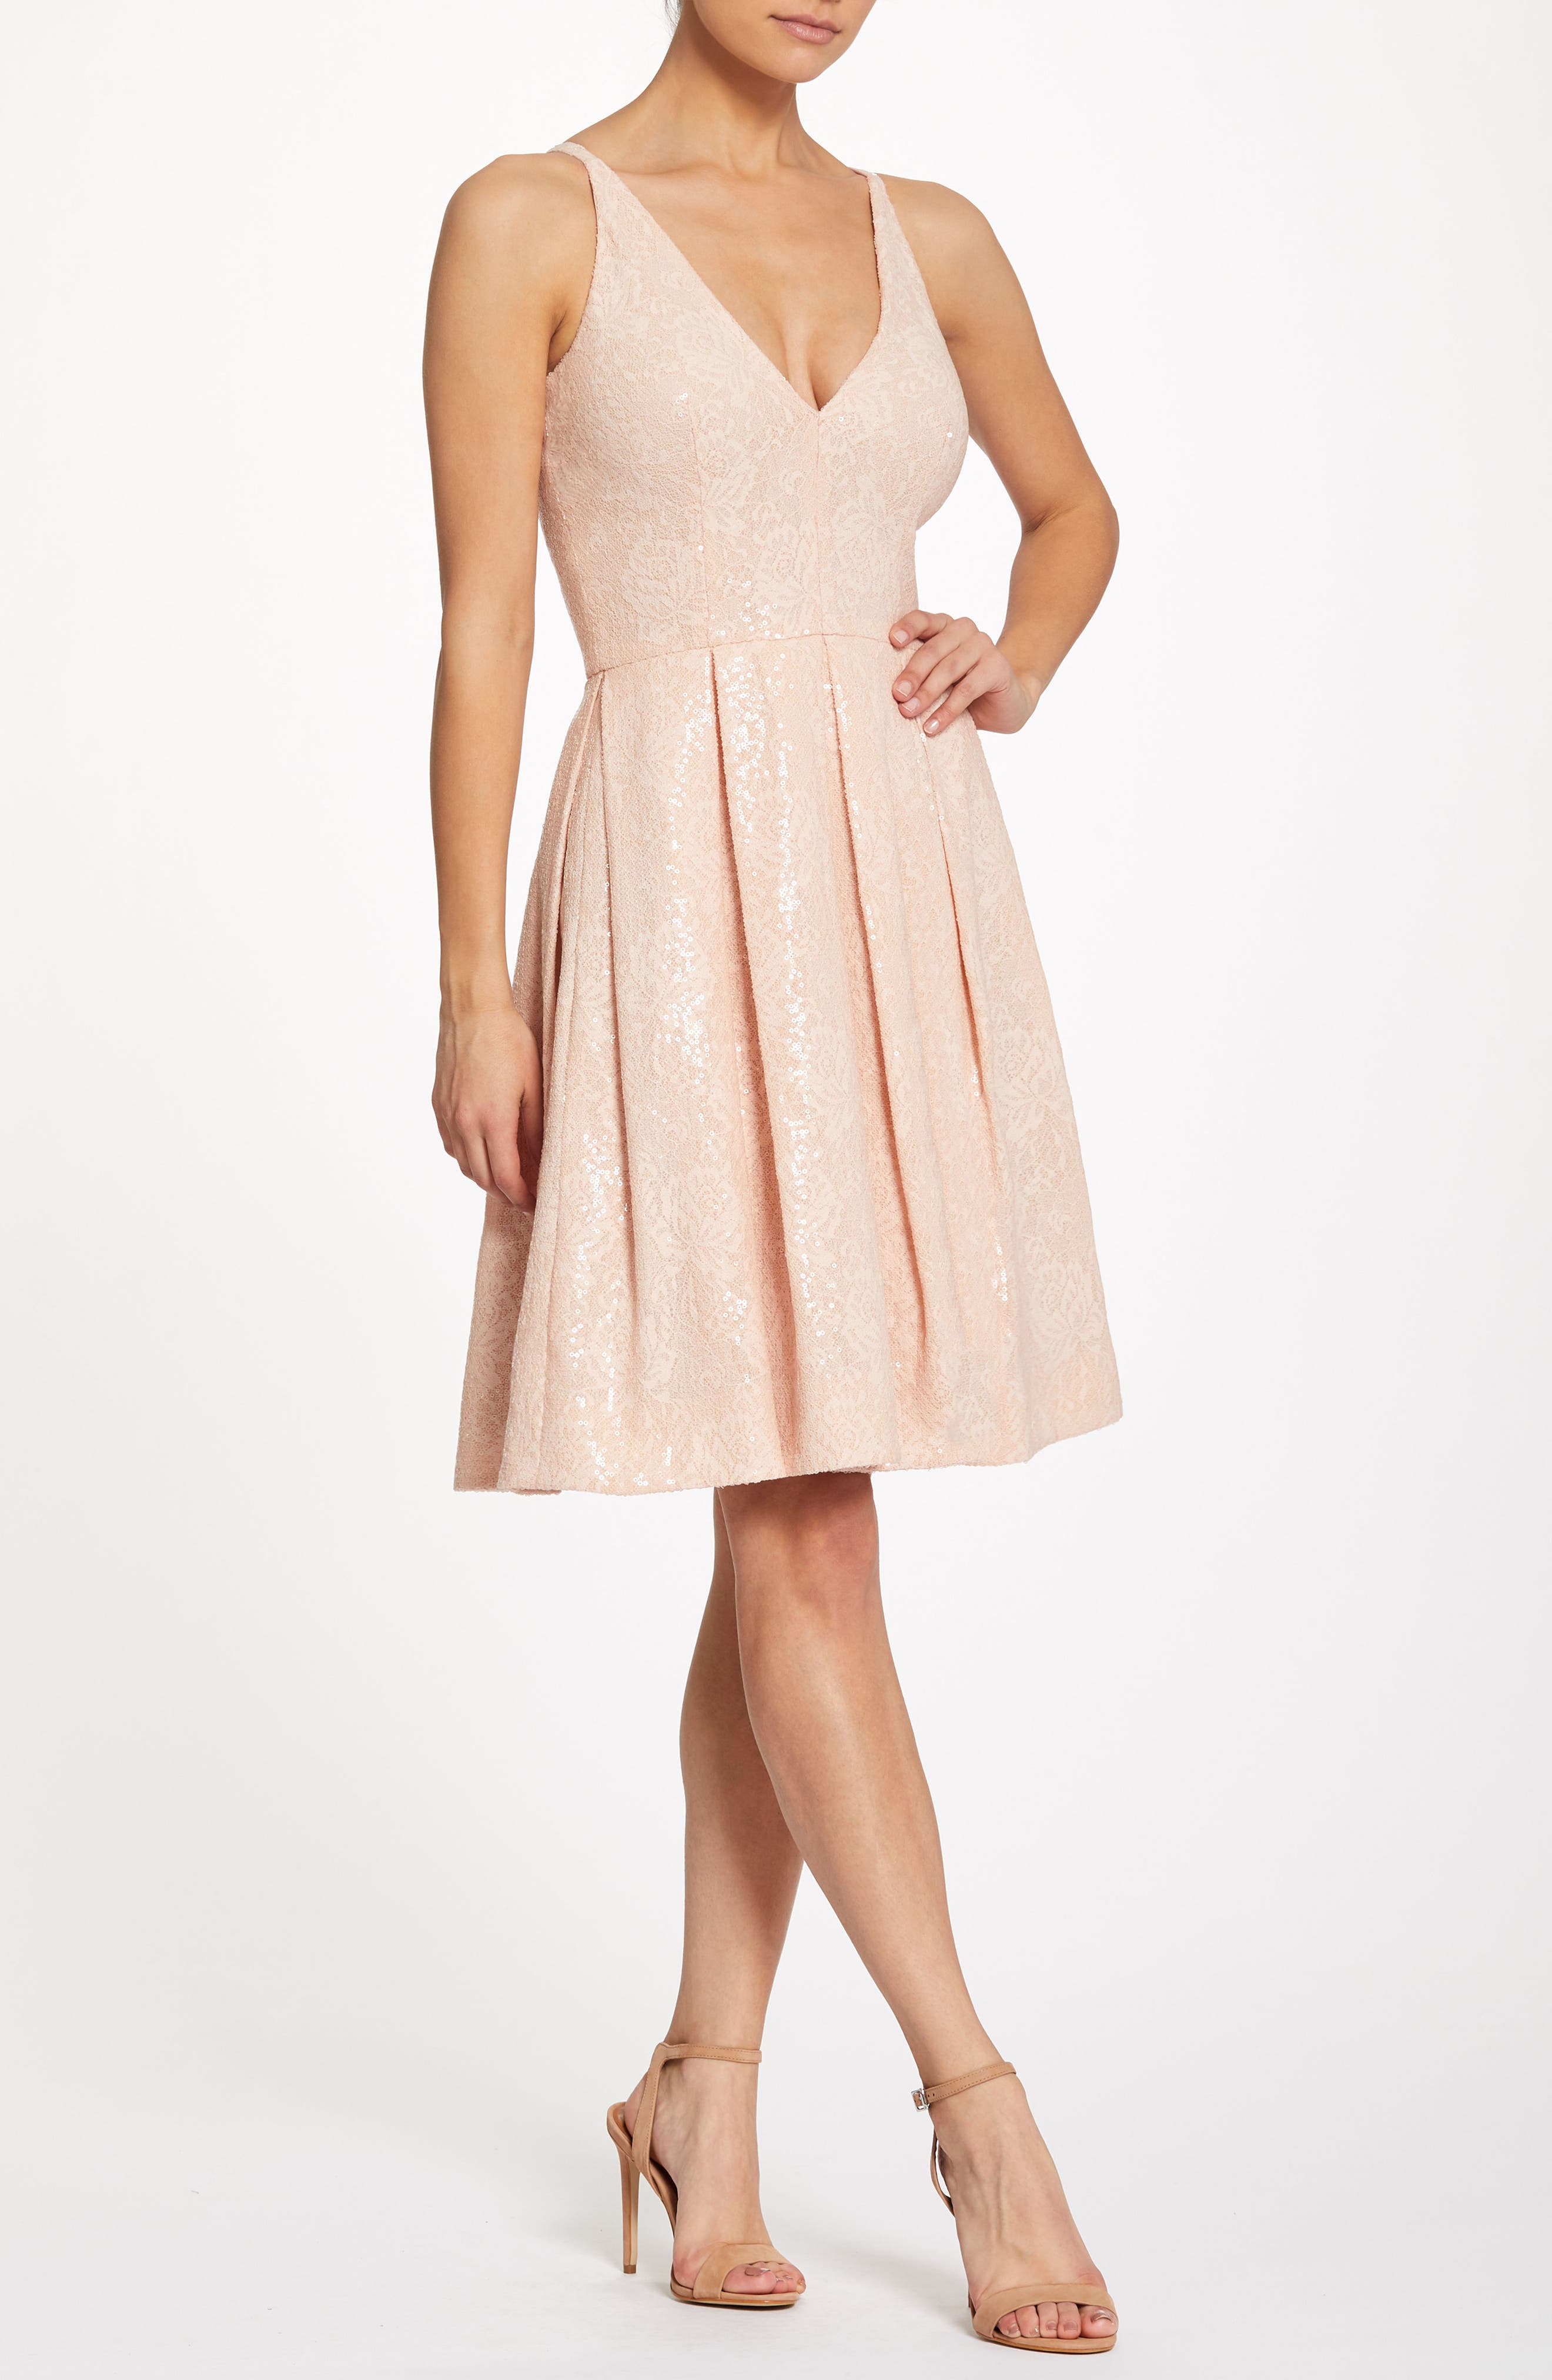 Collette Sequin Fit & Flare Dress,                             Alternate thumbnail 2, color,                             Pink/ Nude